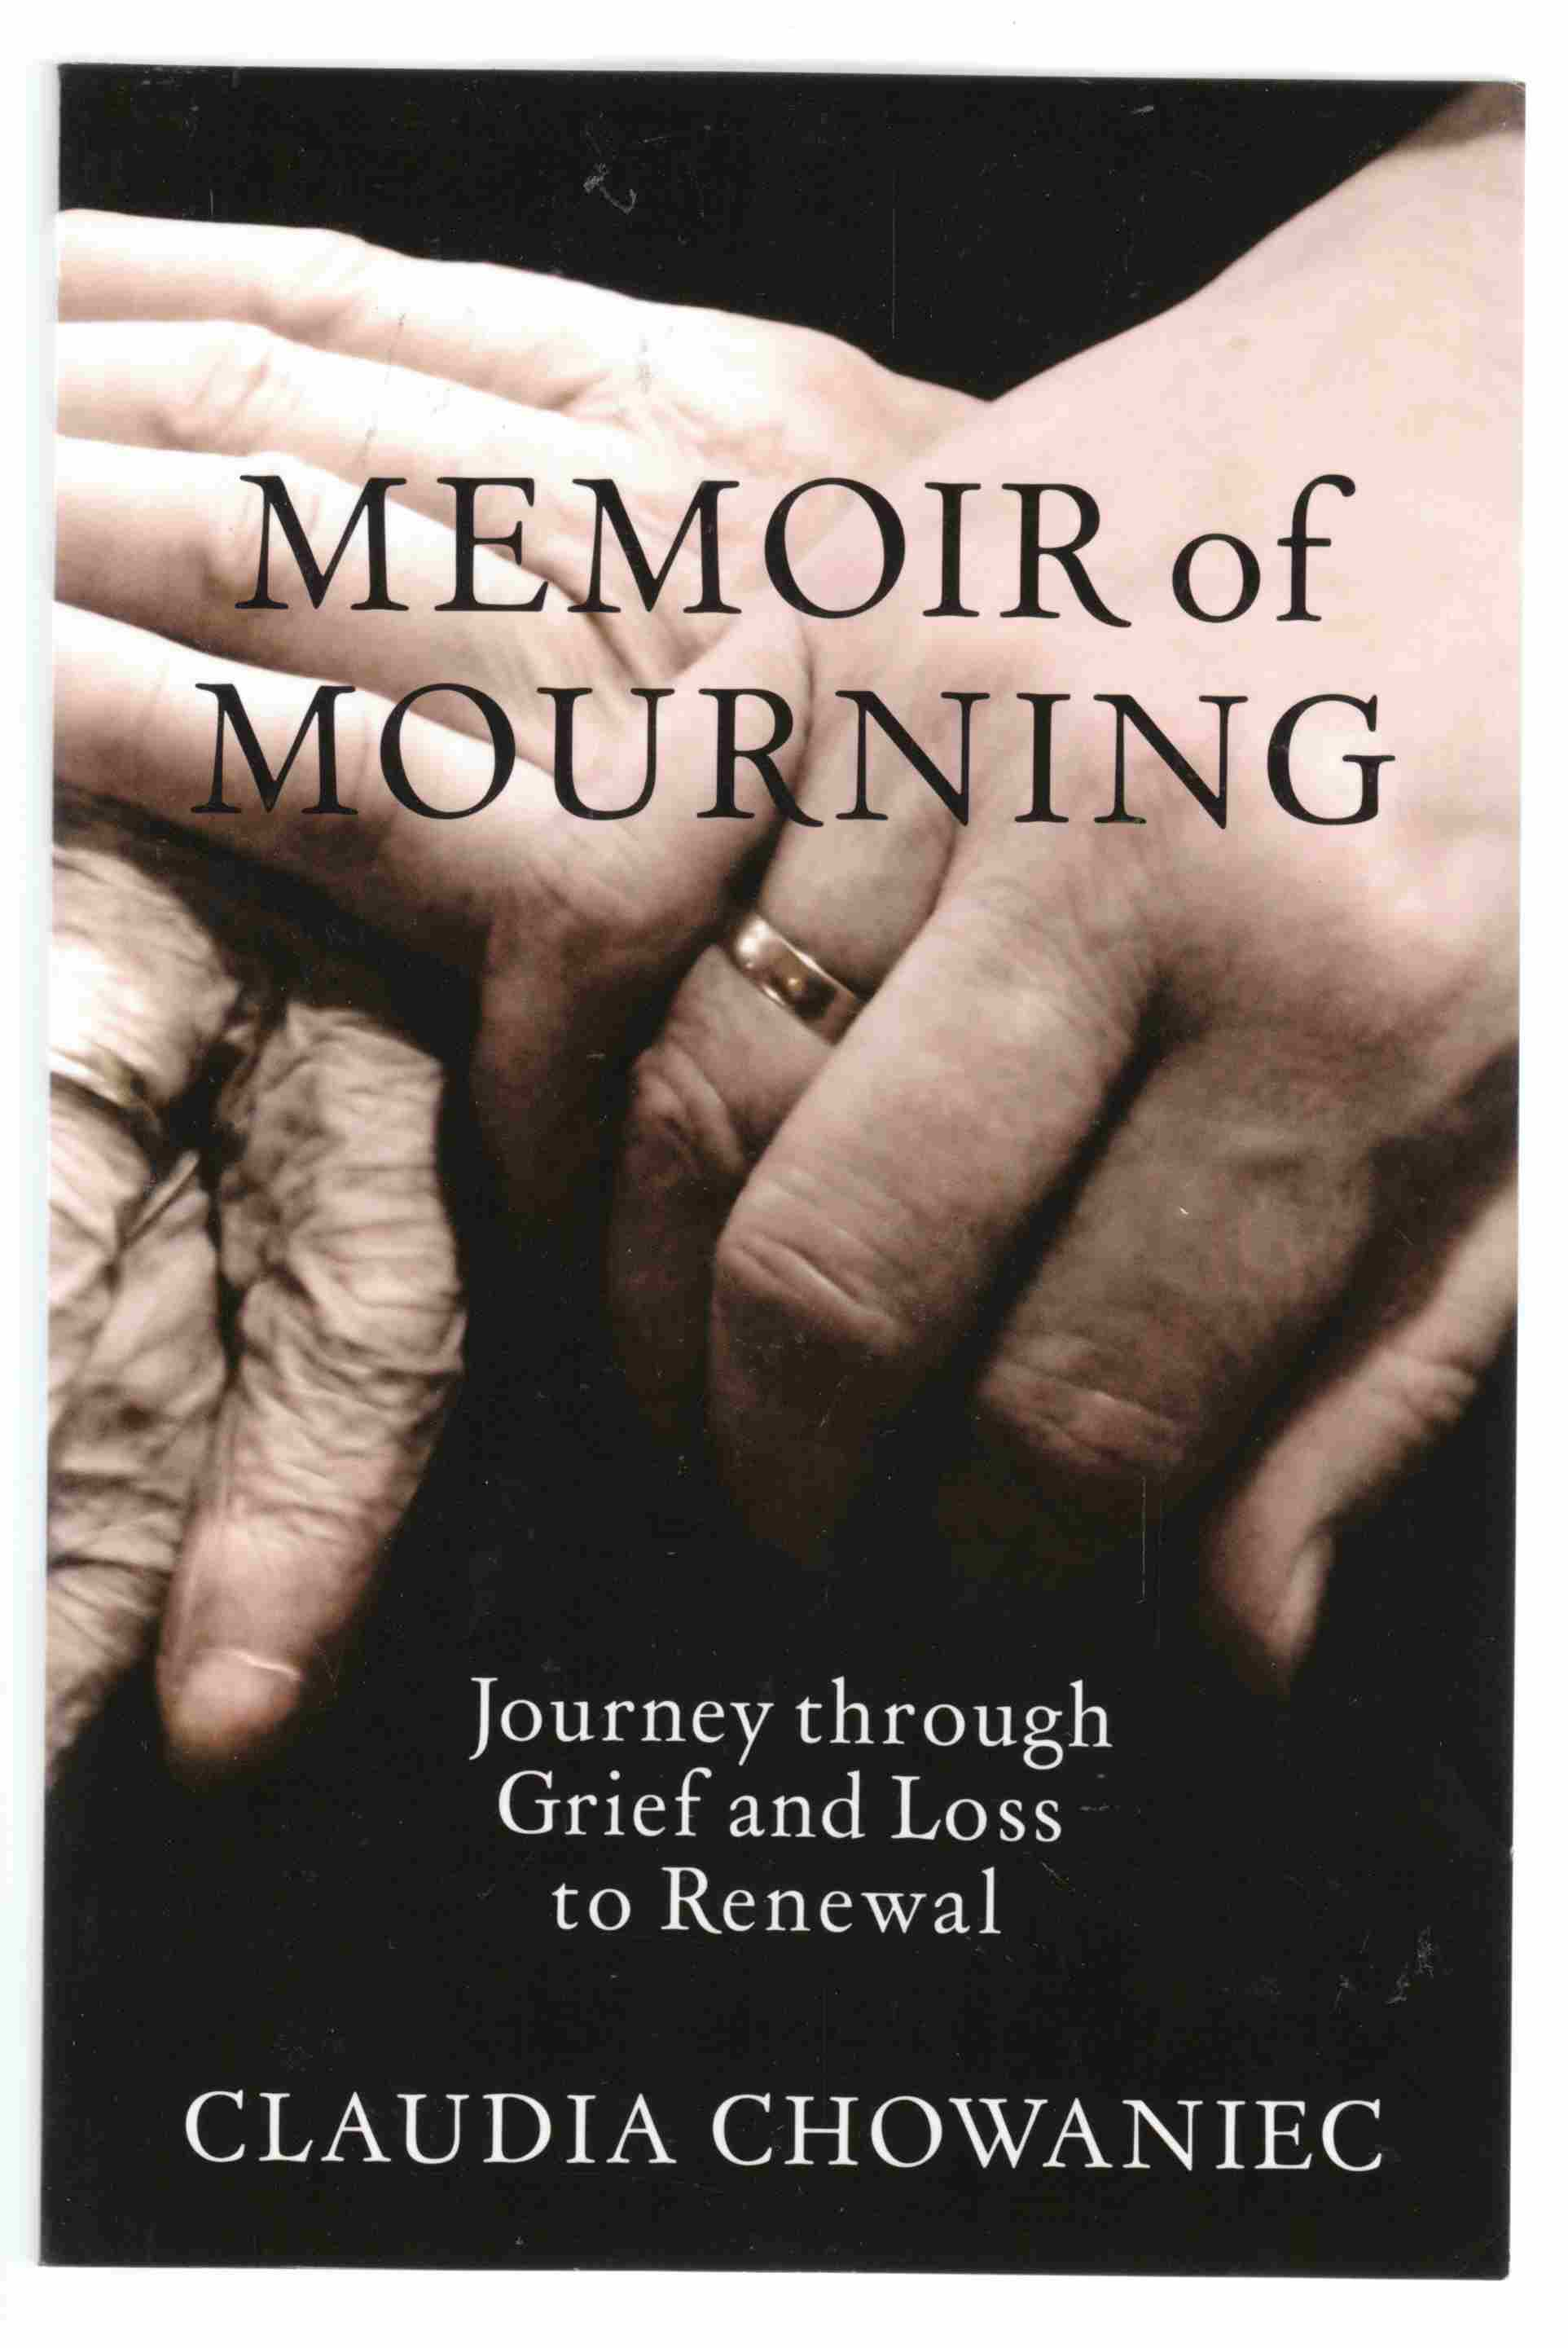 Image for Memoir of Mourning Journey through Grief and Loss to Renewal